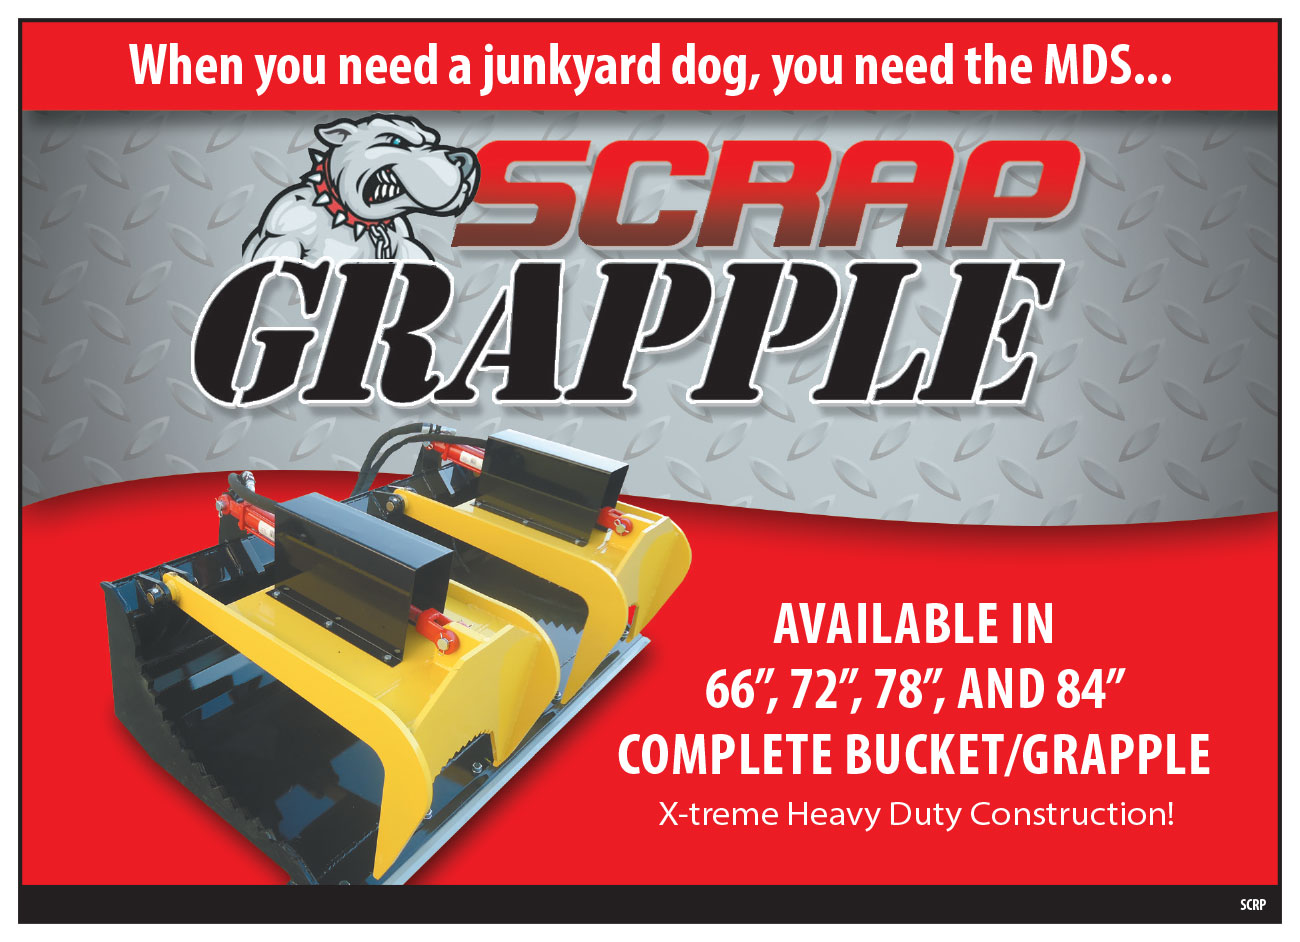 Tractor Buckets With Scrap Grapple - MDS Manufacturing